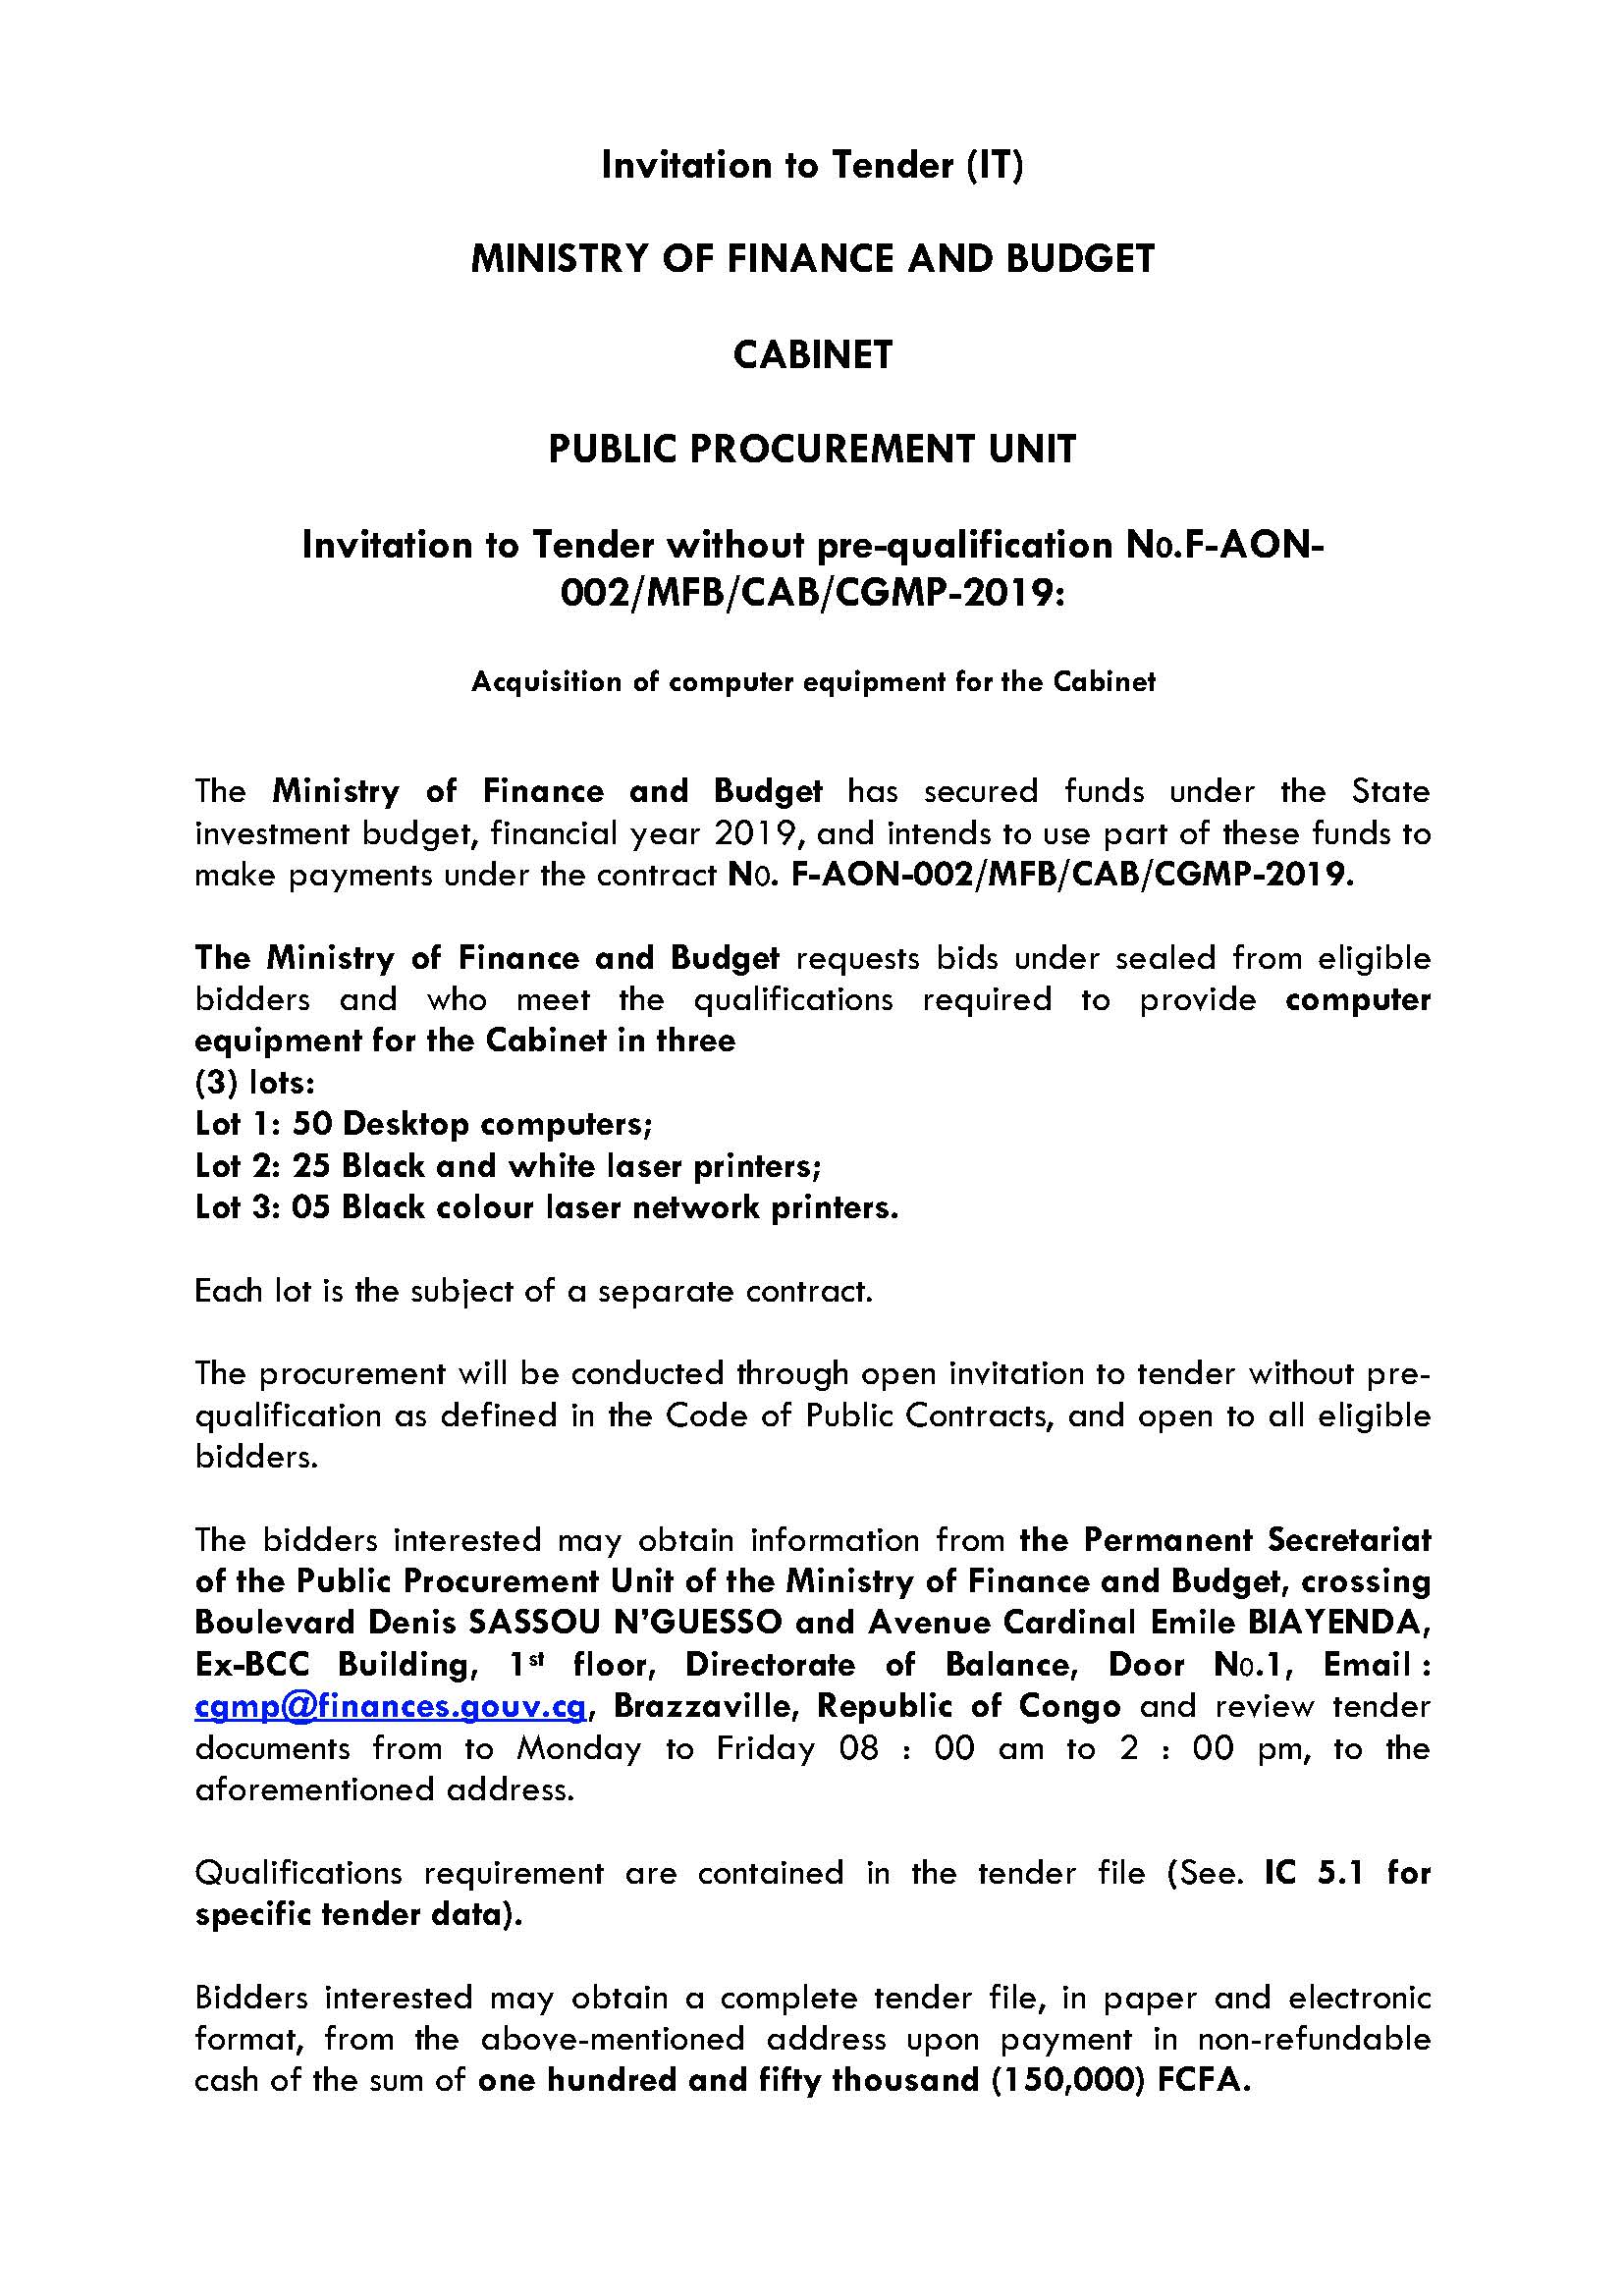 Invitation to Tender without pre-qualification N0 F-AON-002